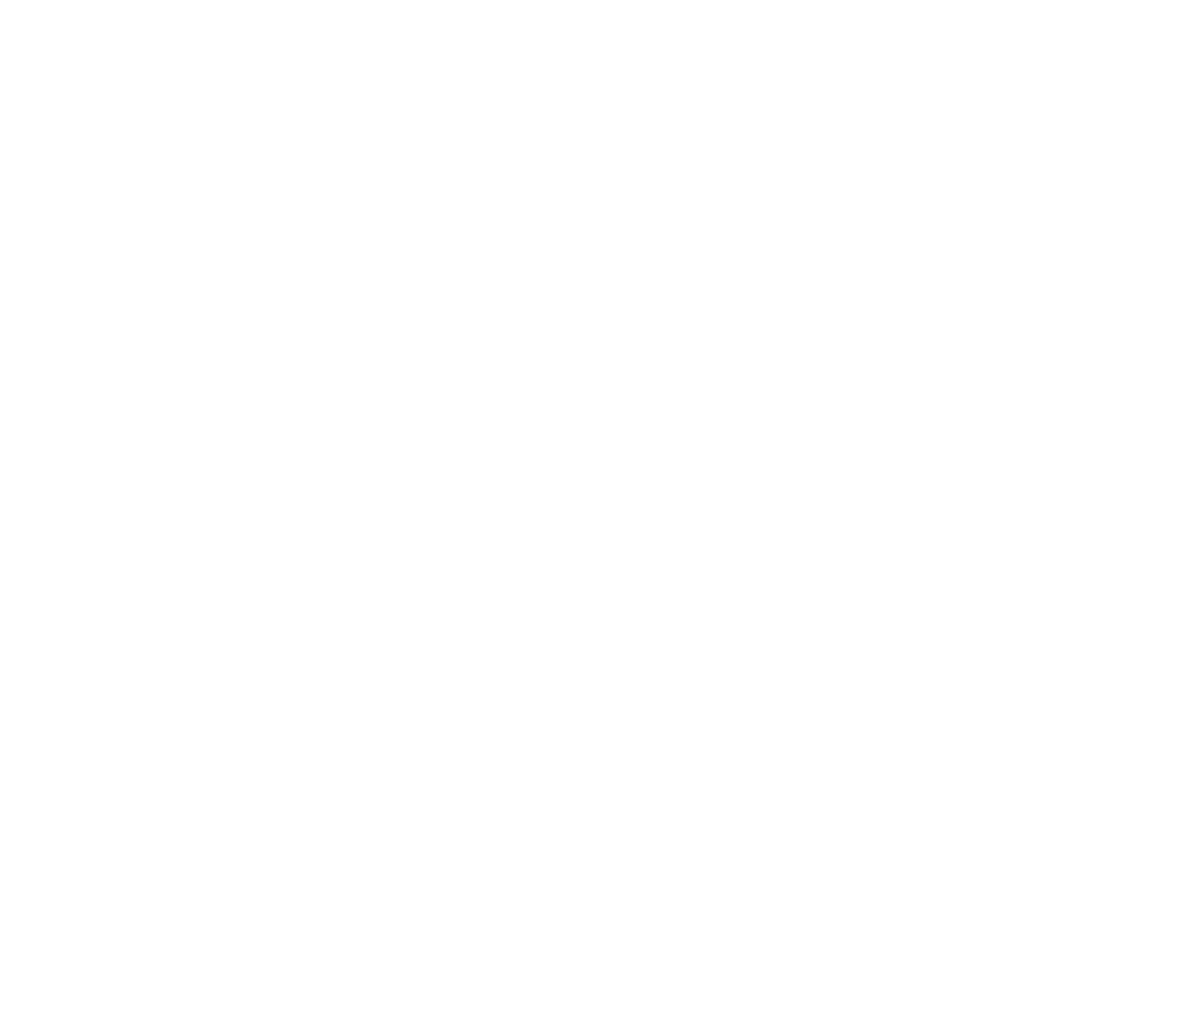 Jewelry Buyer & Loans in Orlando since 1989